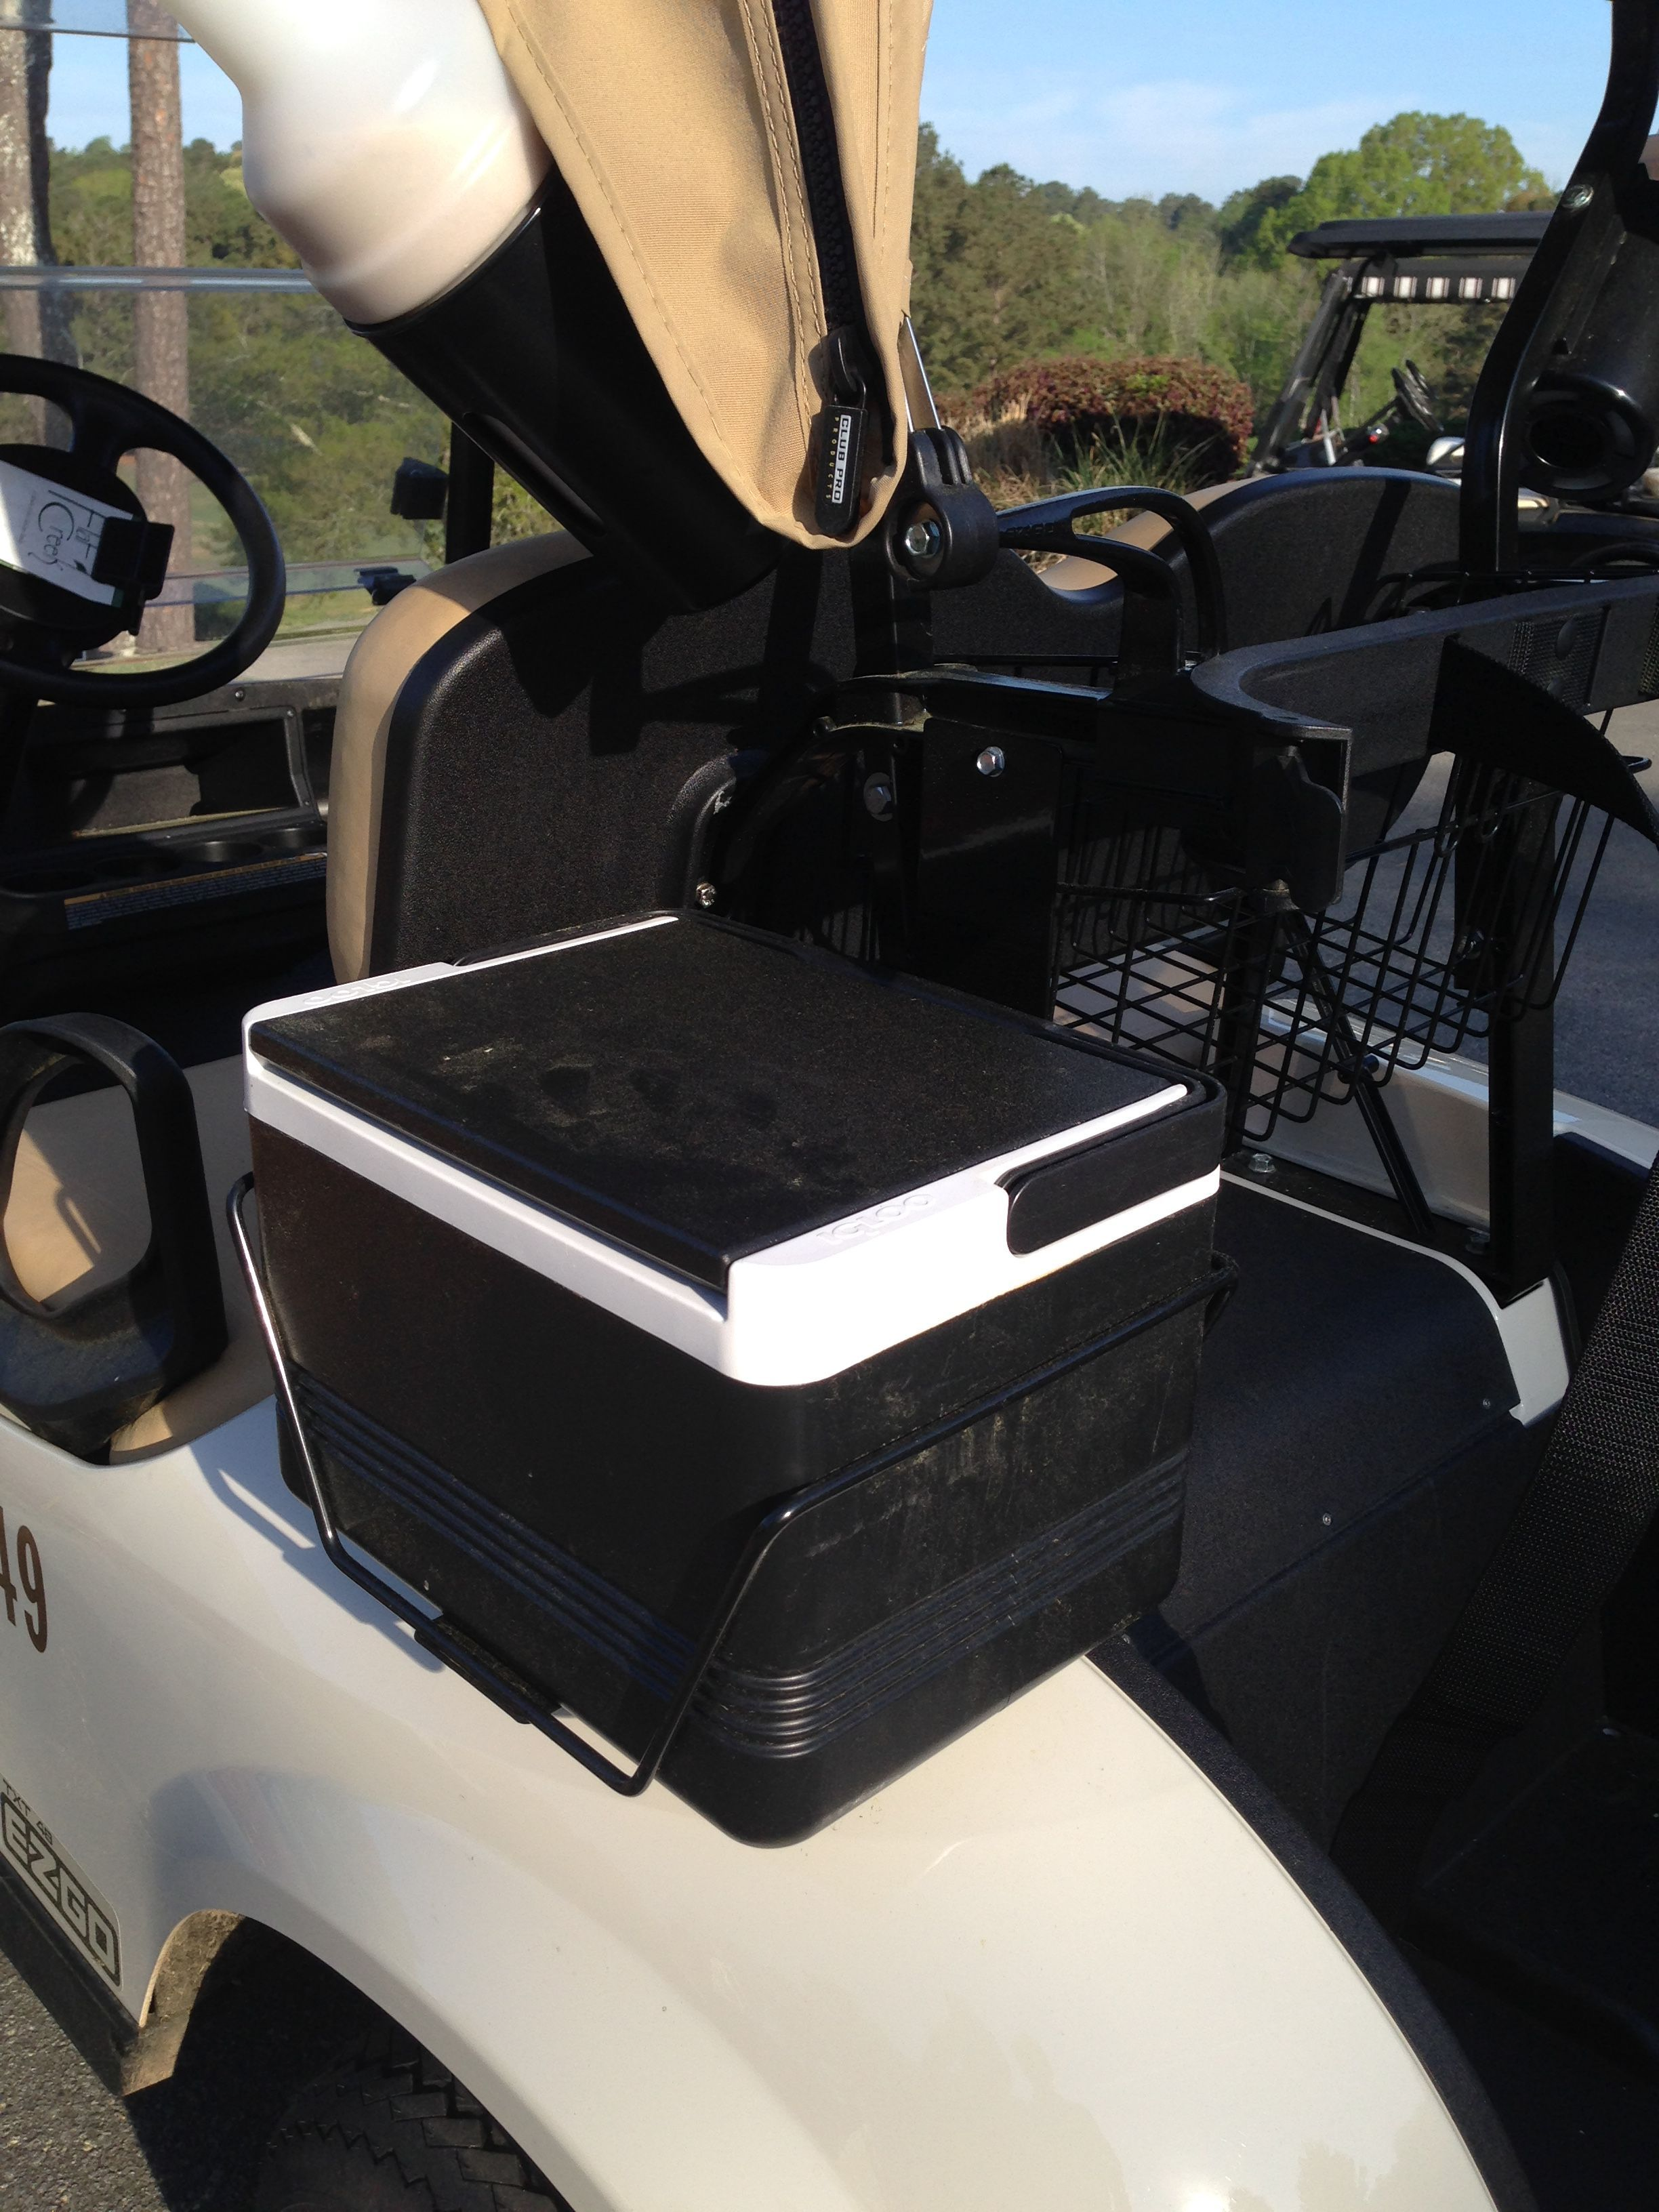 Golf cart coolers come in a variety of styles - this one attaches to Golf Cart Coolers on powered cooler, utv cooler, trailer cooler, engine cooler, fan cooler, golf mulligan,